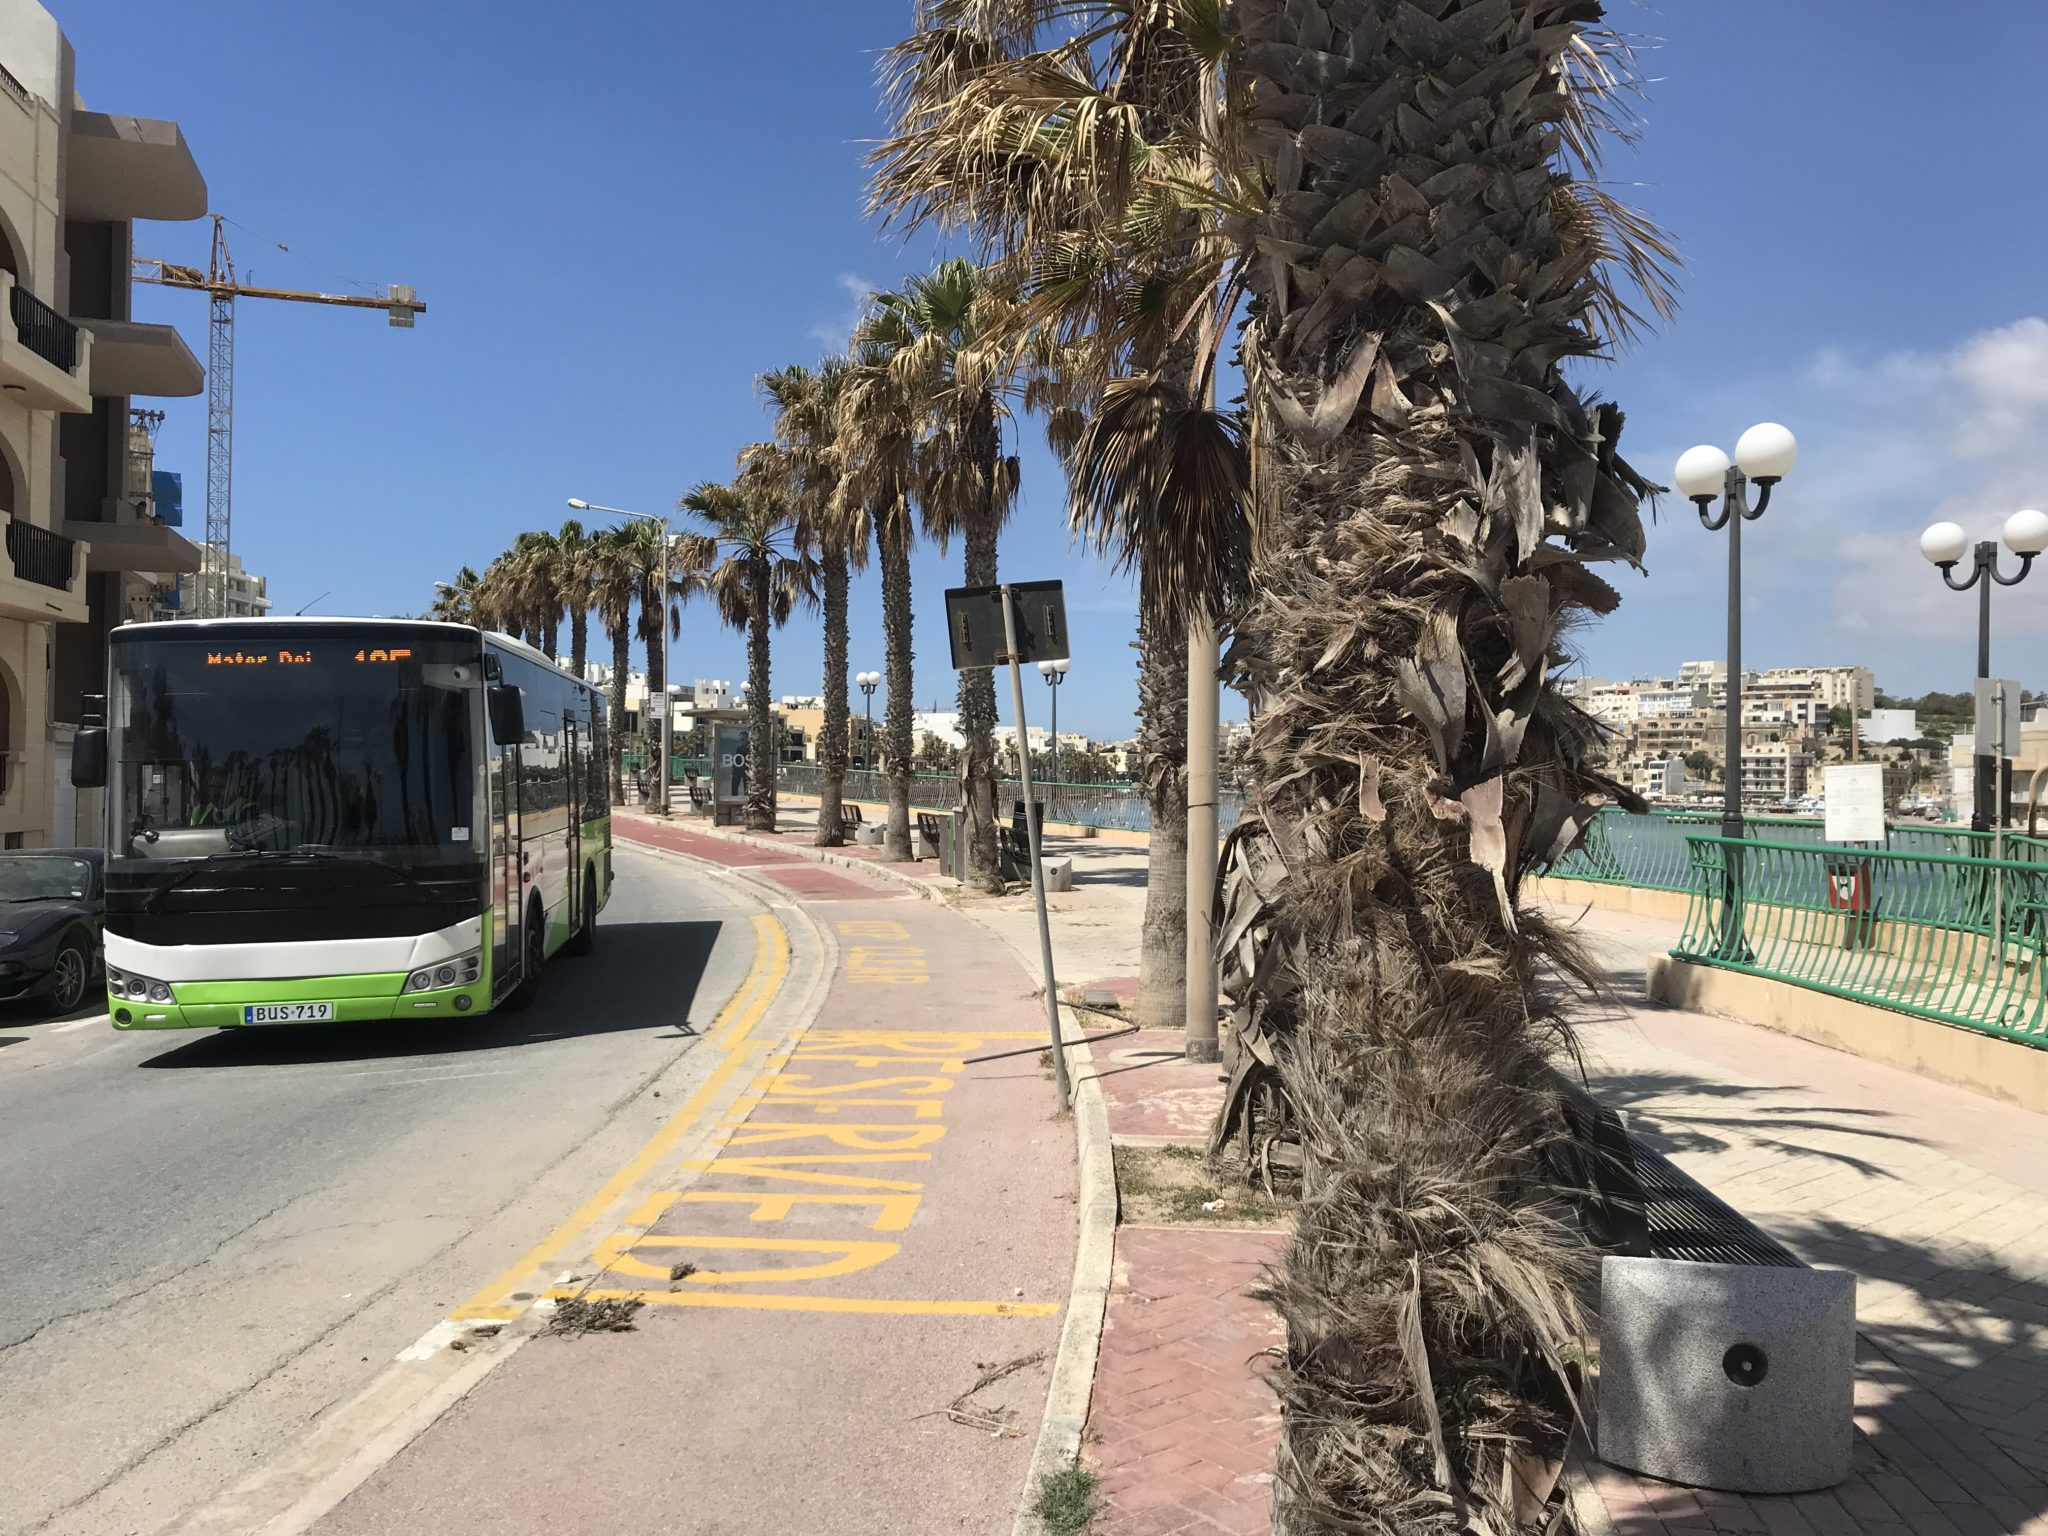 Accessible Public Transportation in Malta